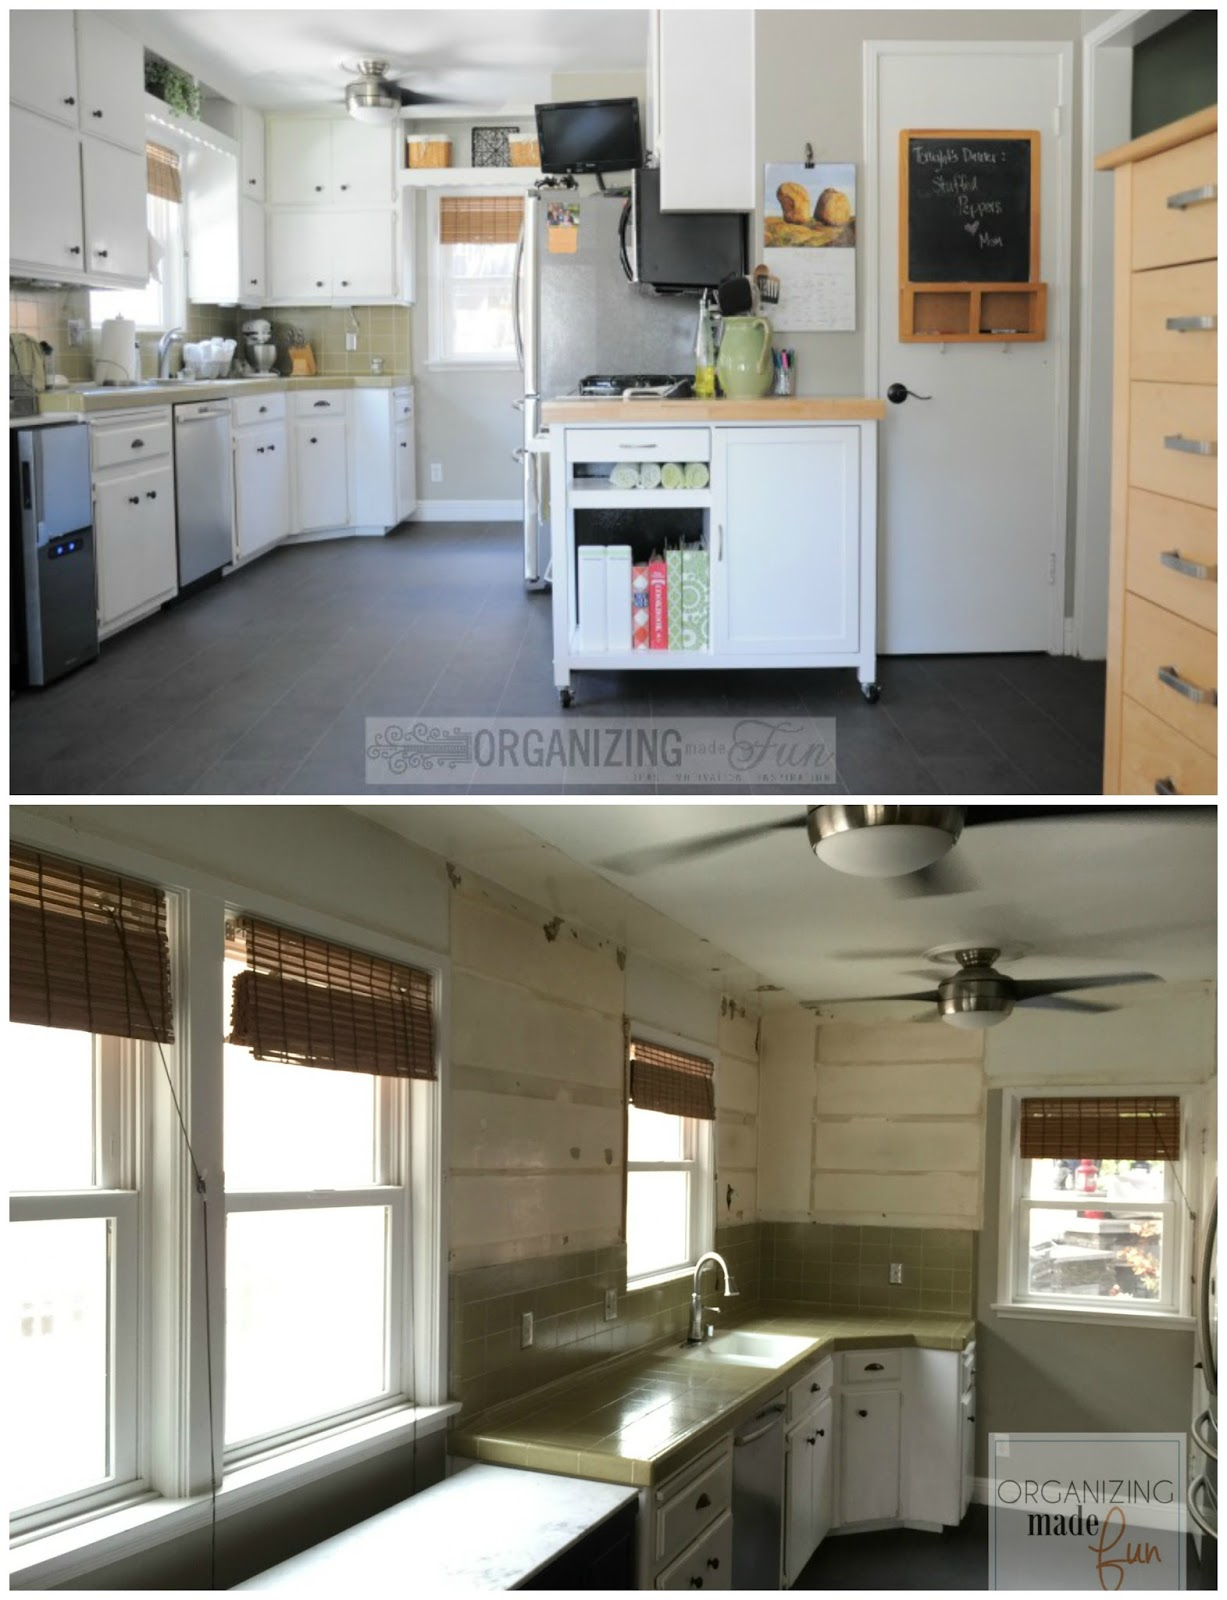 How to demo kitchen cabinets